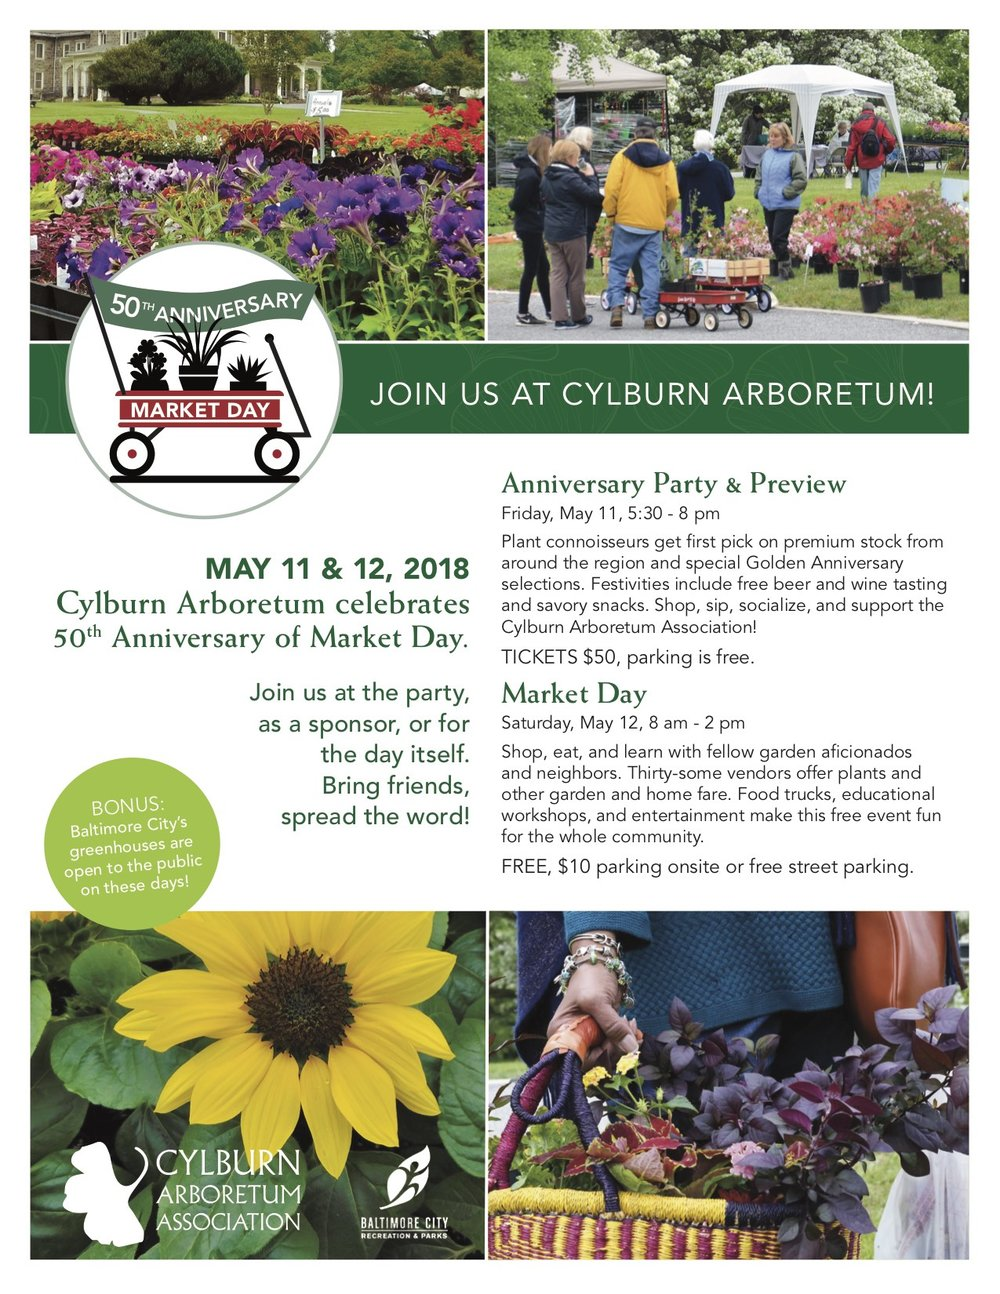 Cylburn Arboretum 50th Anniversary Market Day Event 2018 - Intreegue Design